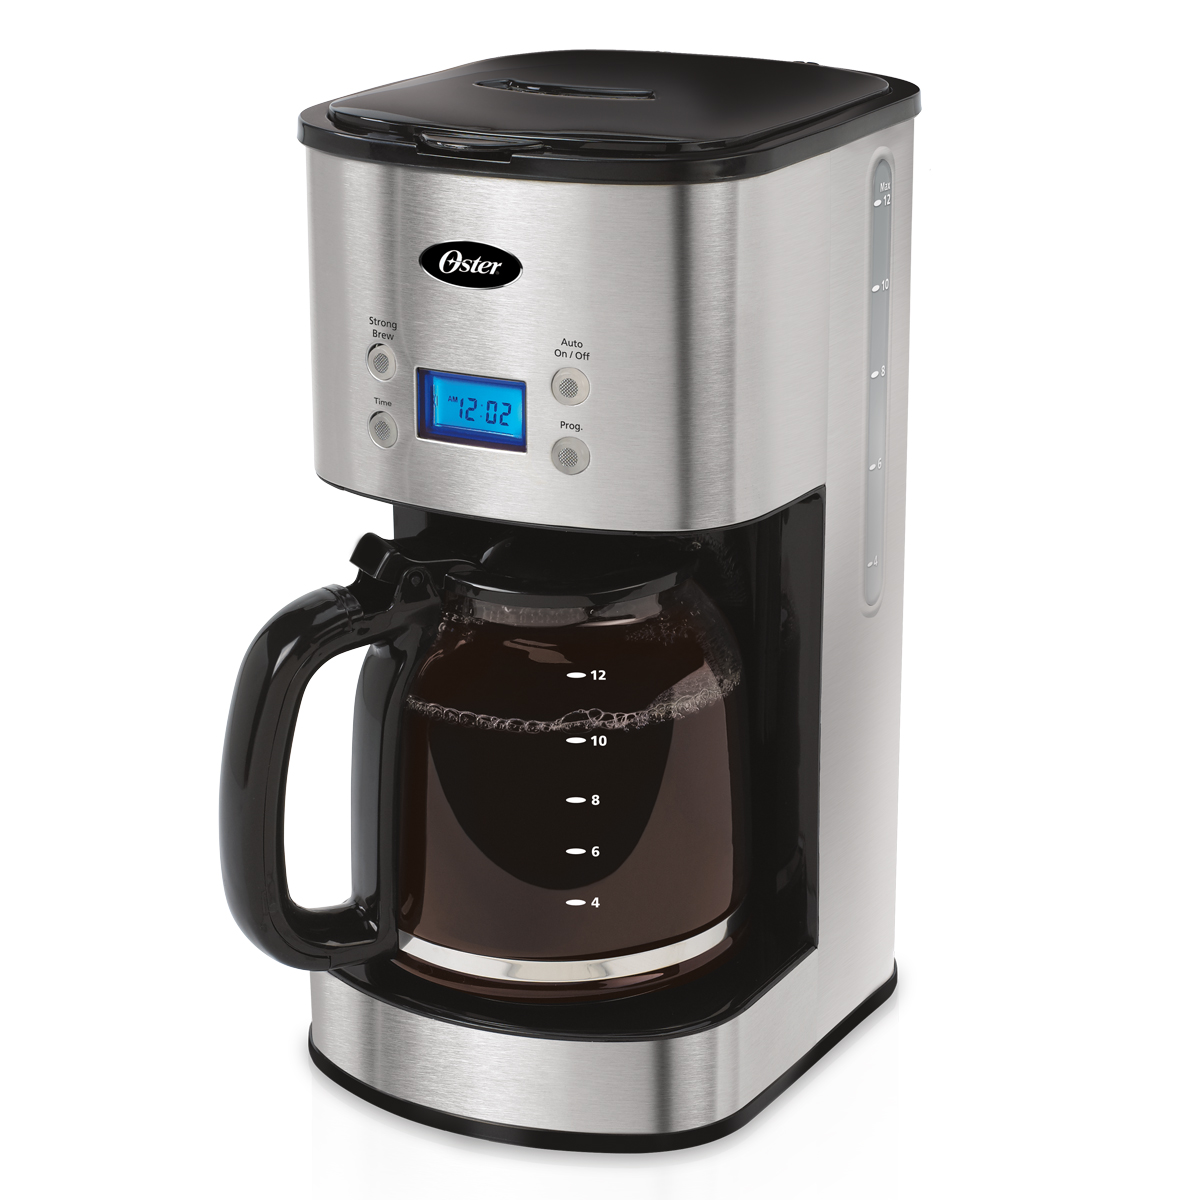 Programmable Filter Coffee Maker : Oster 12 Cup Programmable Coffee Maker BVST-JBXSS41 eBay